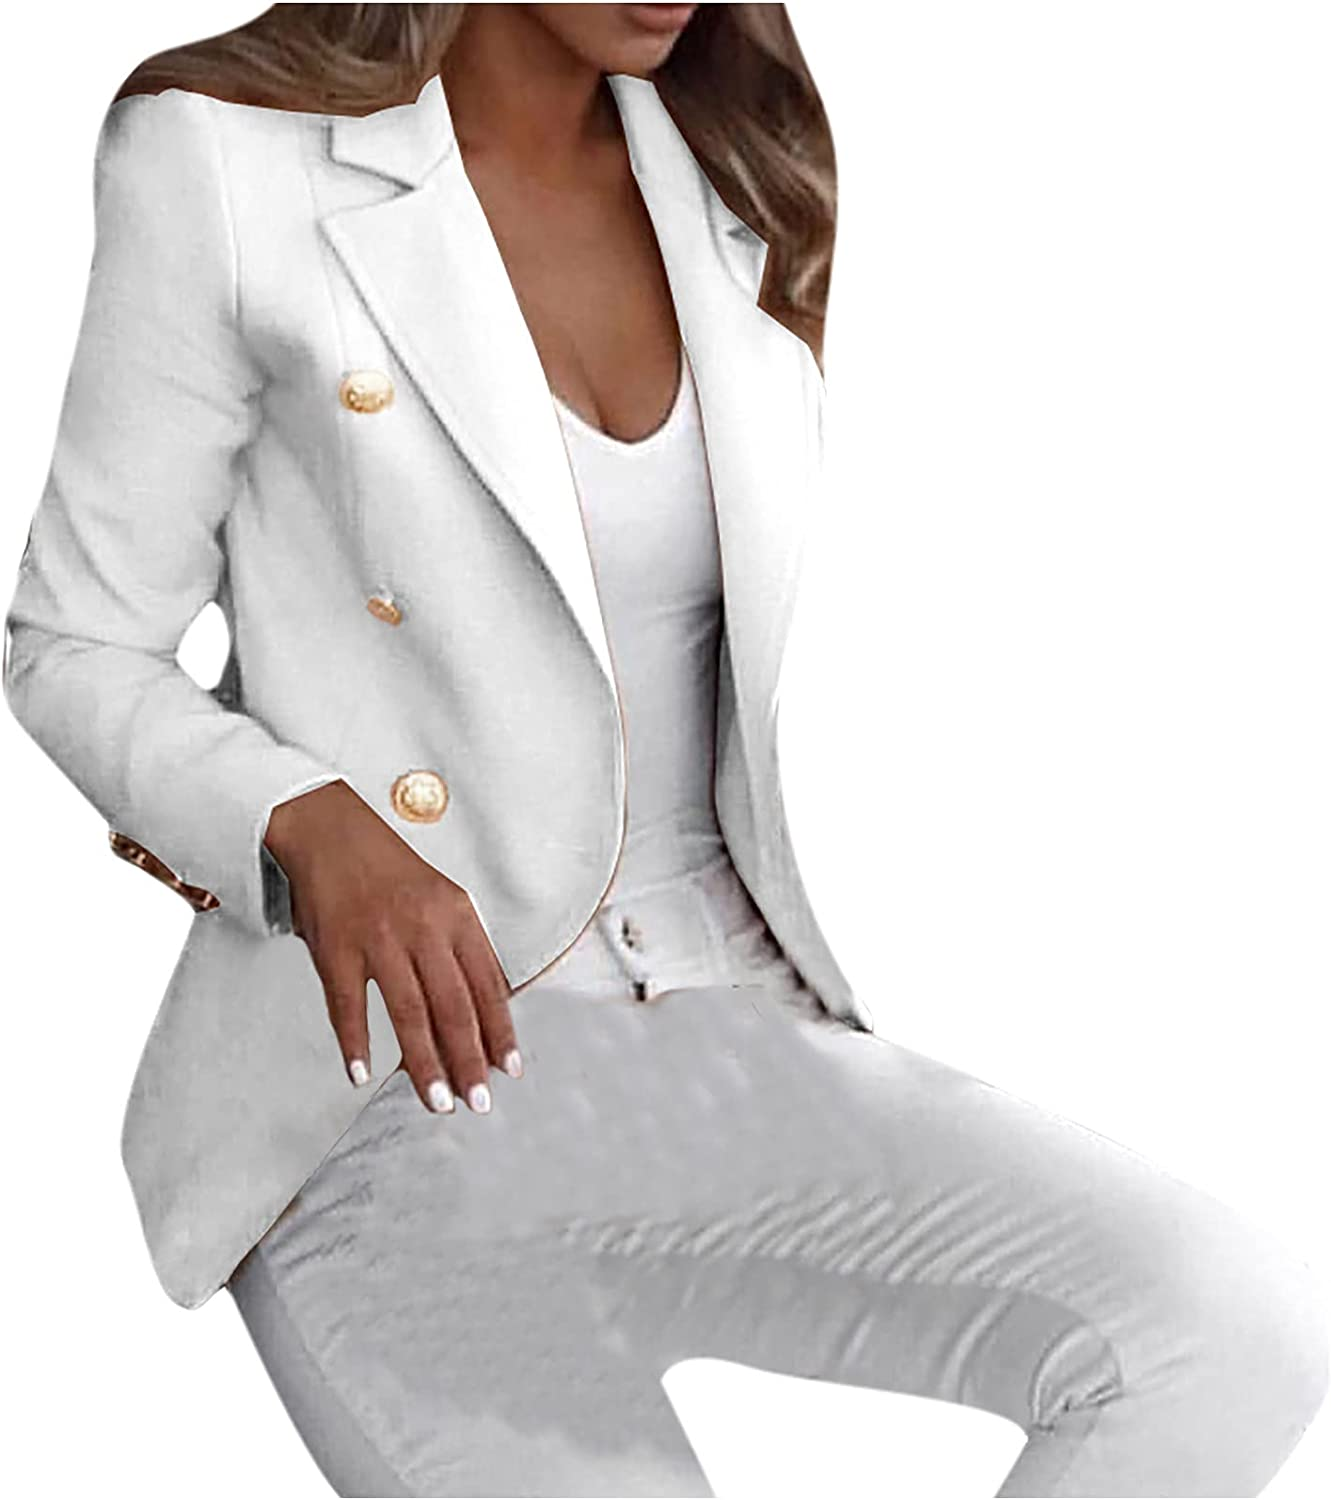 Fitted Blazer Jackets for Women Business Casual Long Sleeve Open Front Suit Fall Fashion Dressy Thin Cardigan Coat